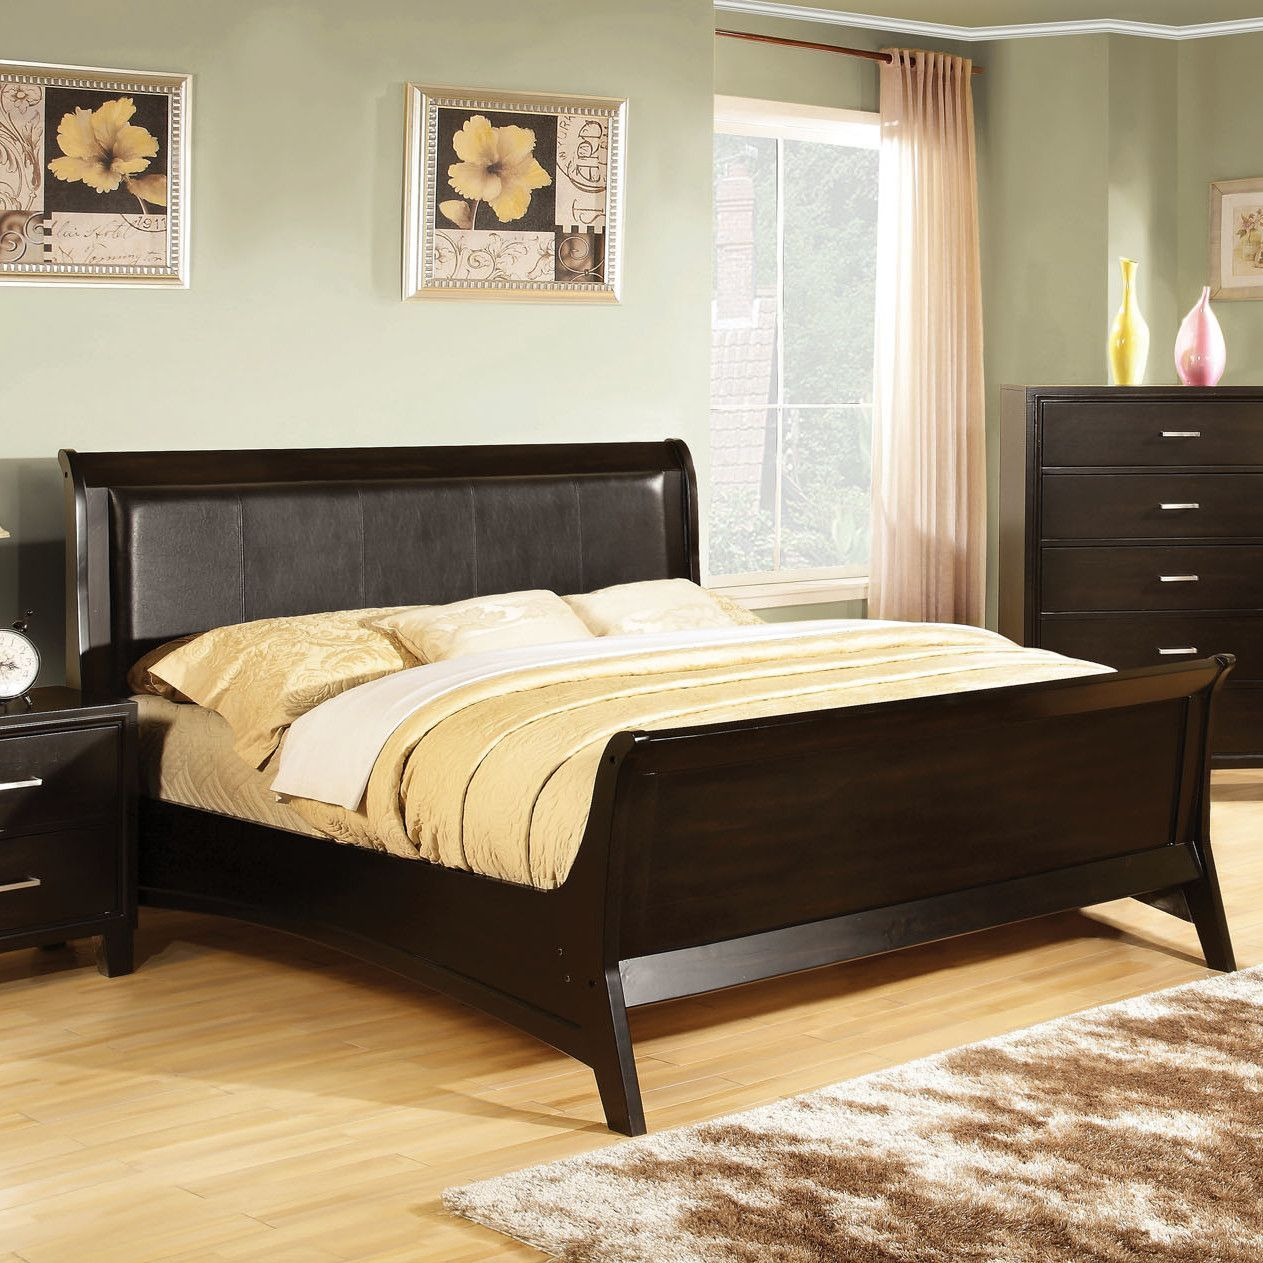 Upholstered Full Sleigh Bed Sleigh Beds Furniture Simple Bed